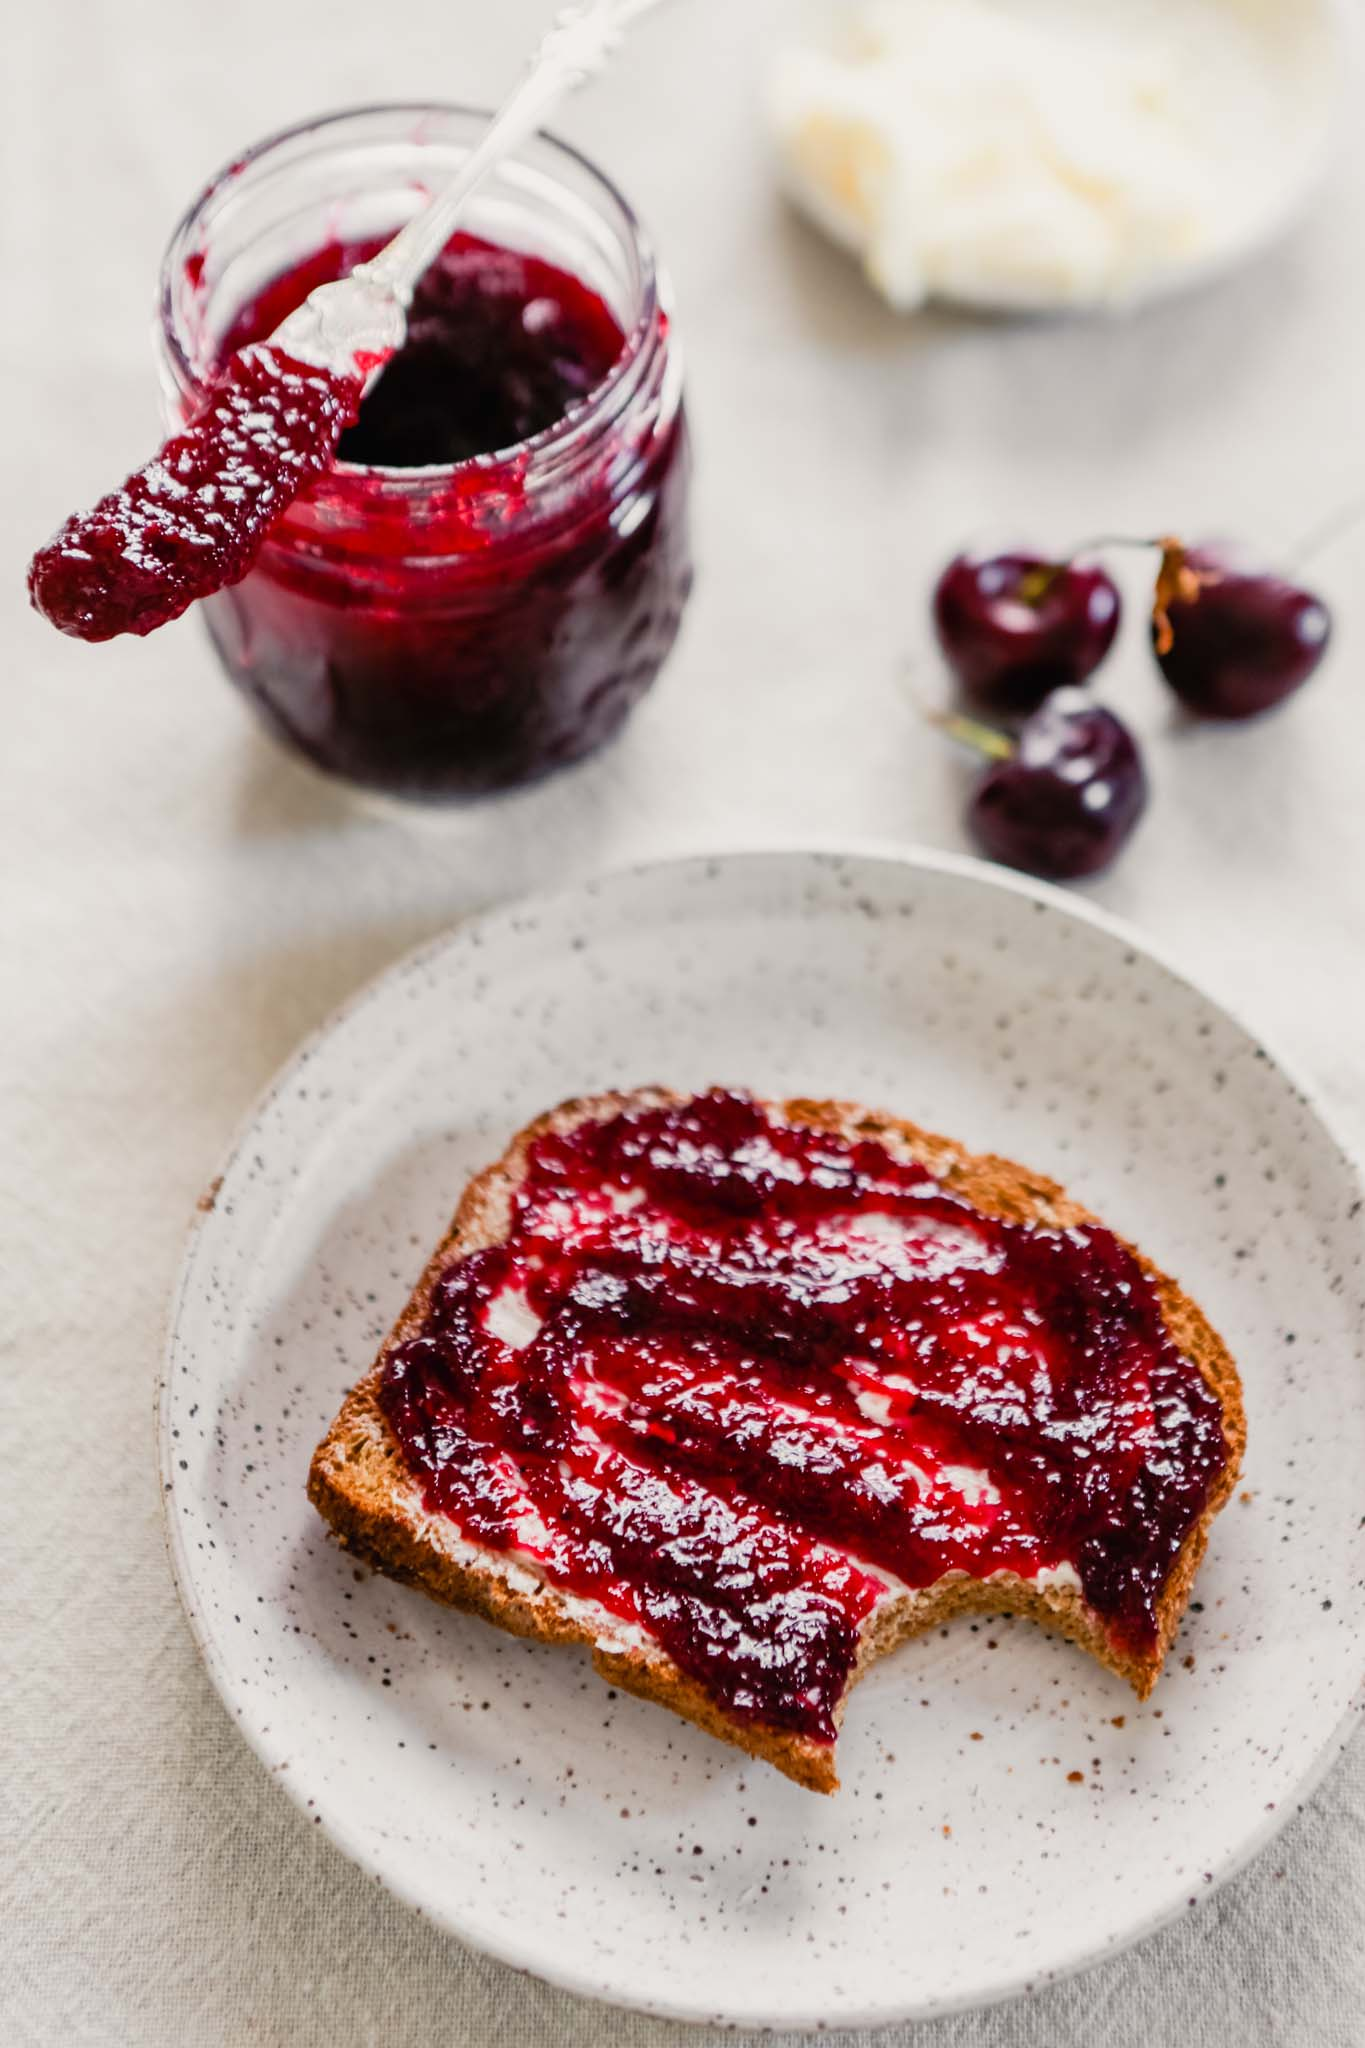 Homemade cherry jam spread onto a piece of buttered toast